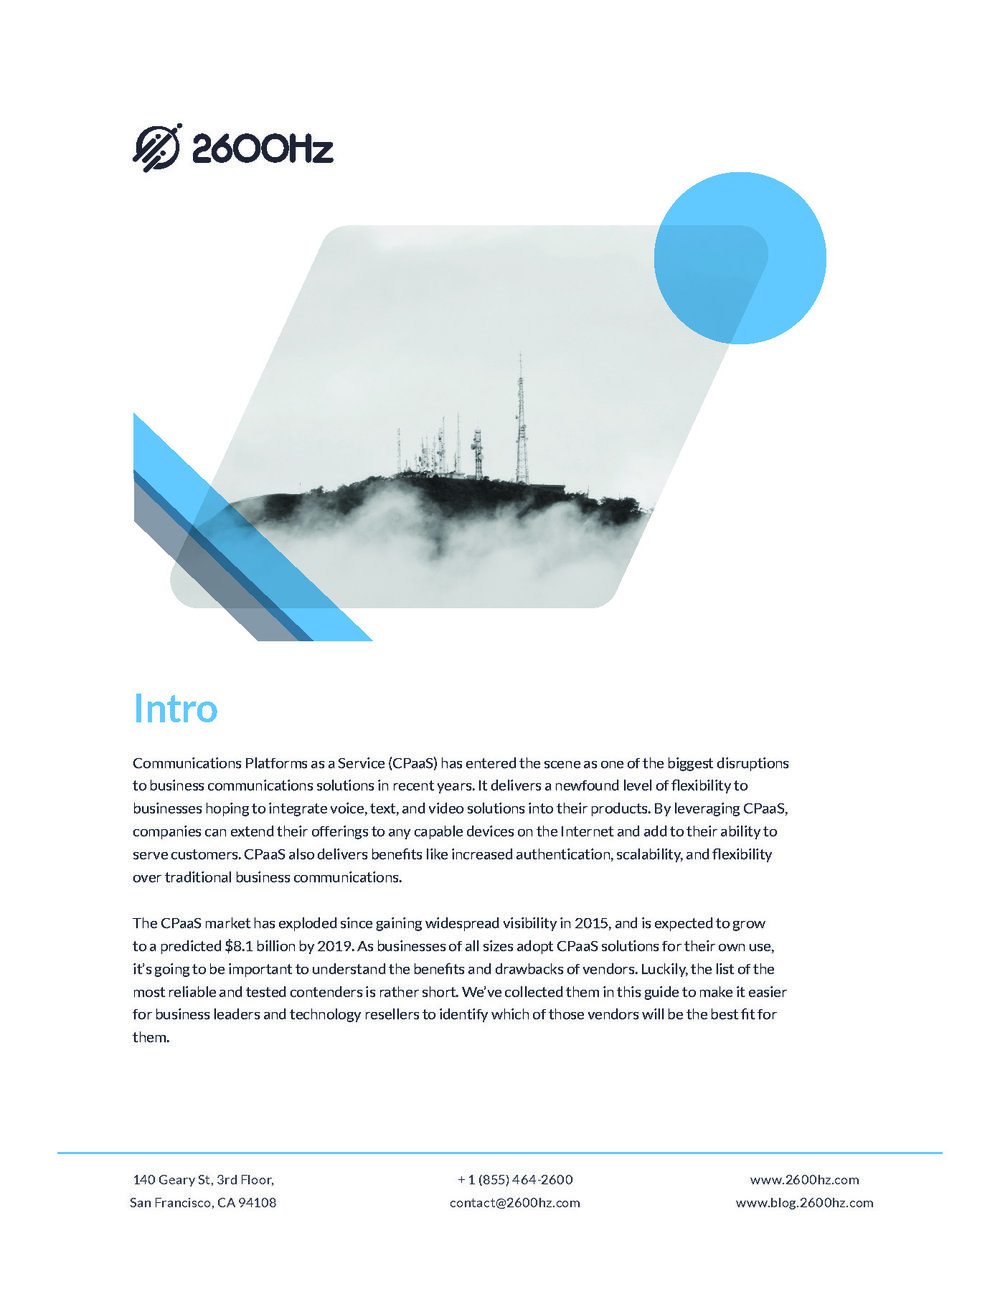 Whitepaper Introduction